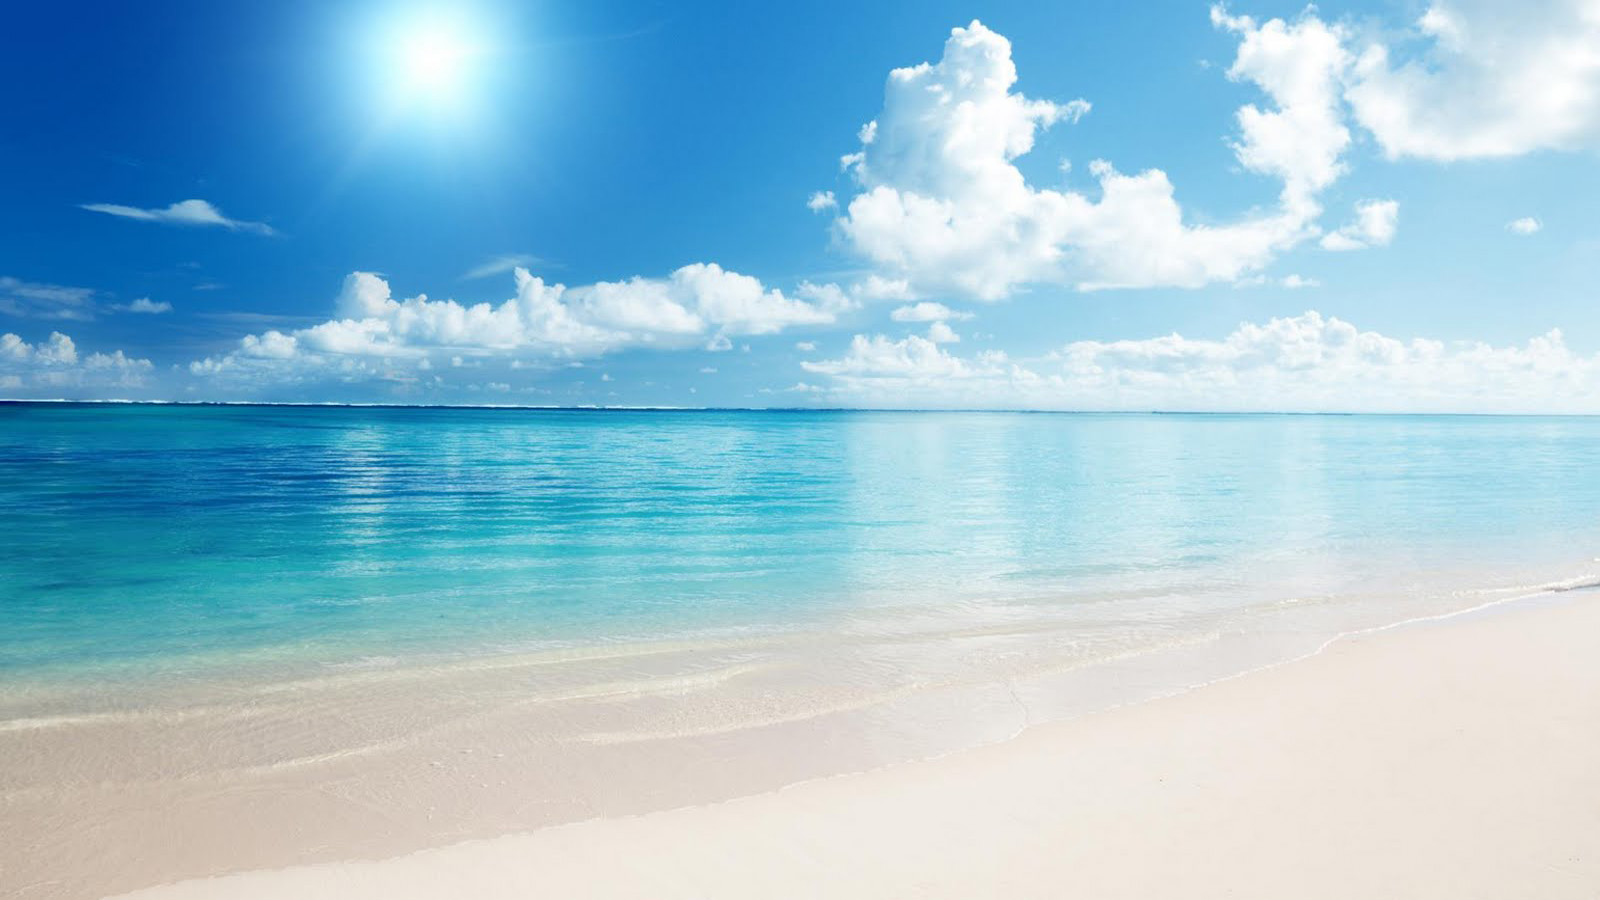 Beach Wallpaper High Definition